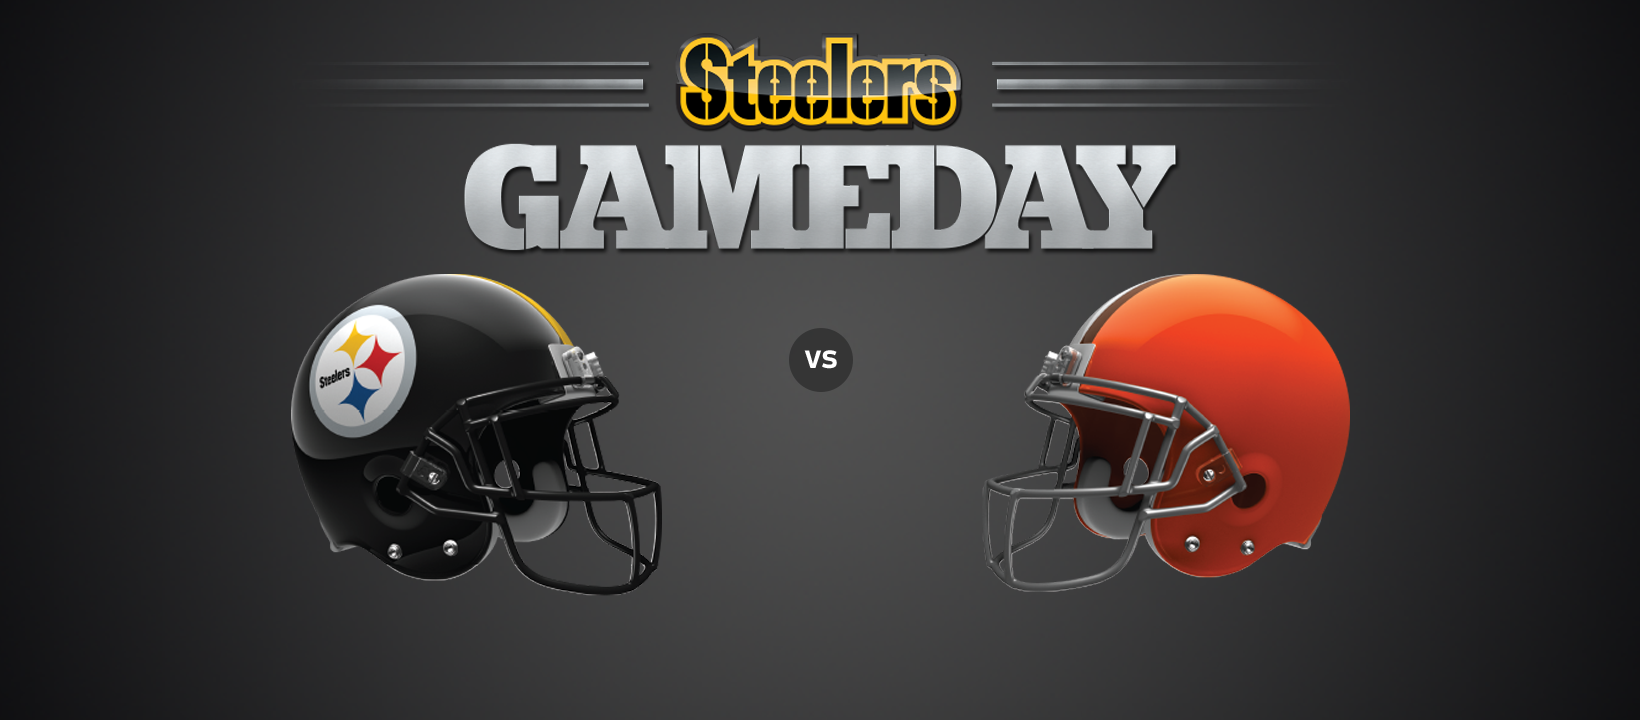 2018 Steelers vs. Browns